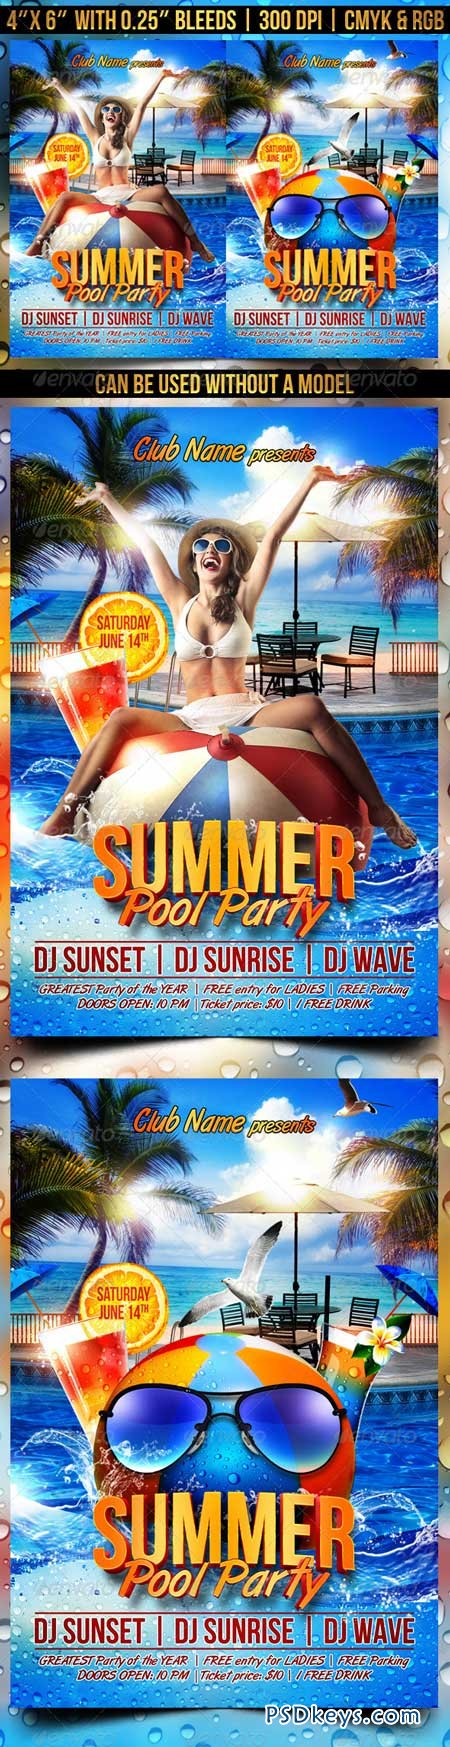 Summer Pool Party Flyer 8102746